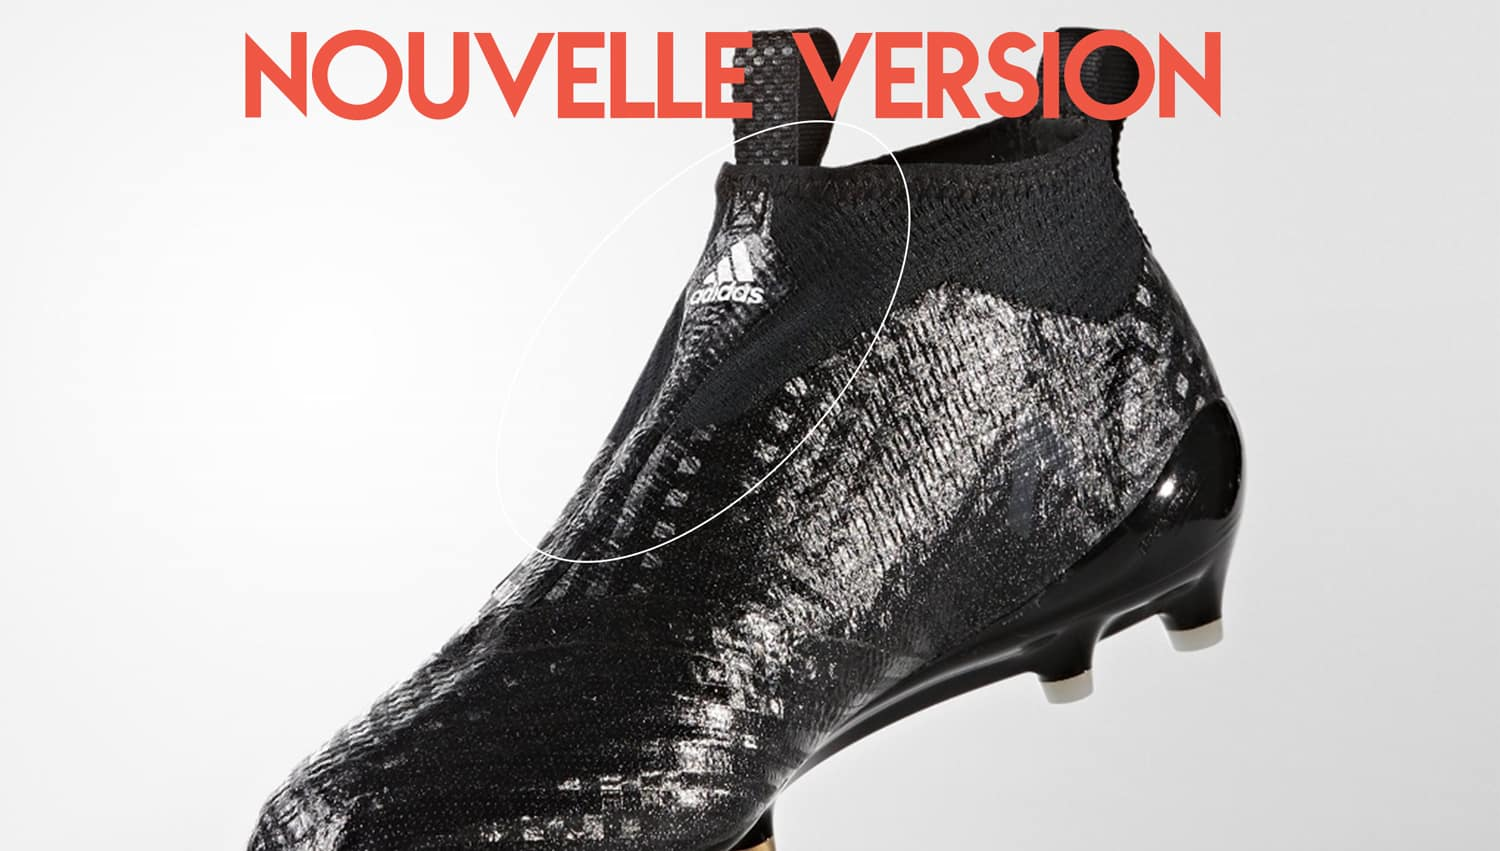 chaussure-football-adidas-ace17-purecontrol-nouvelle-version-img1